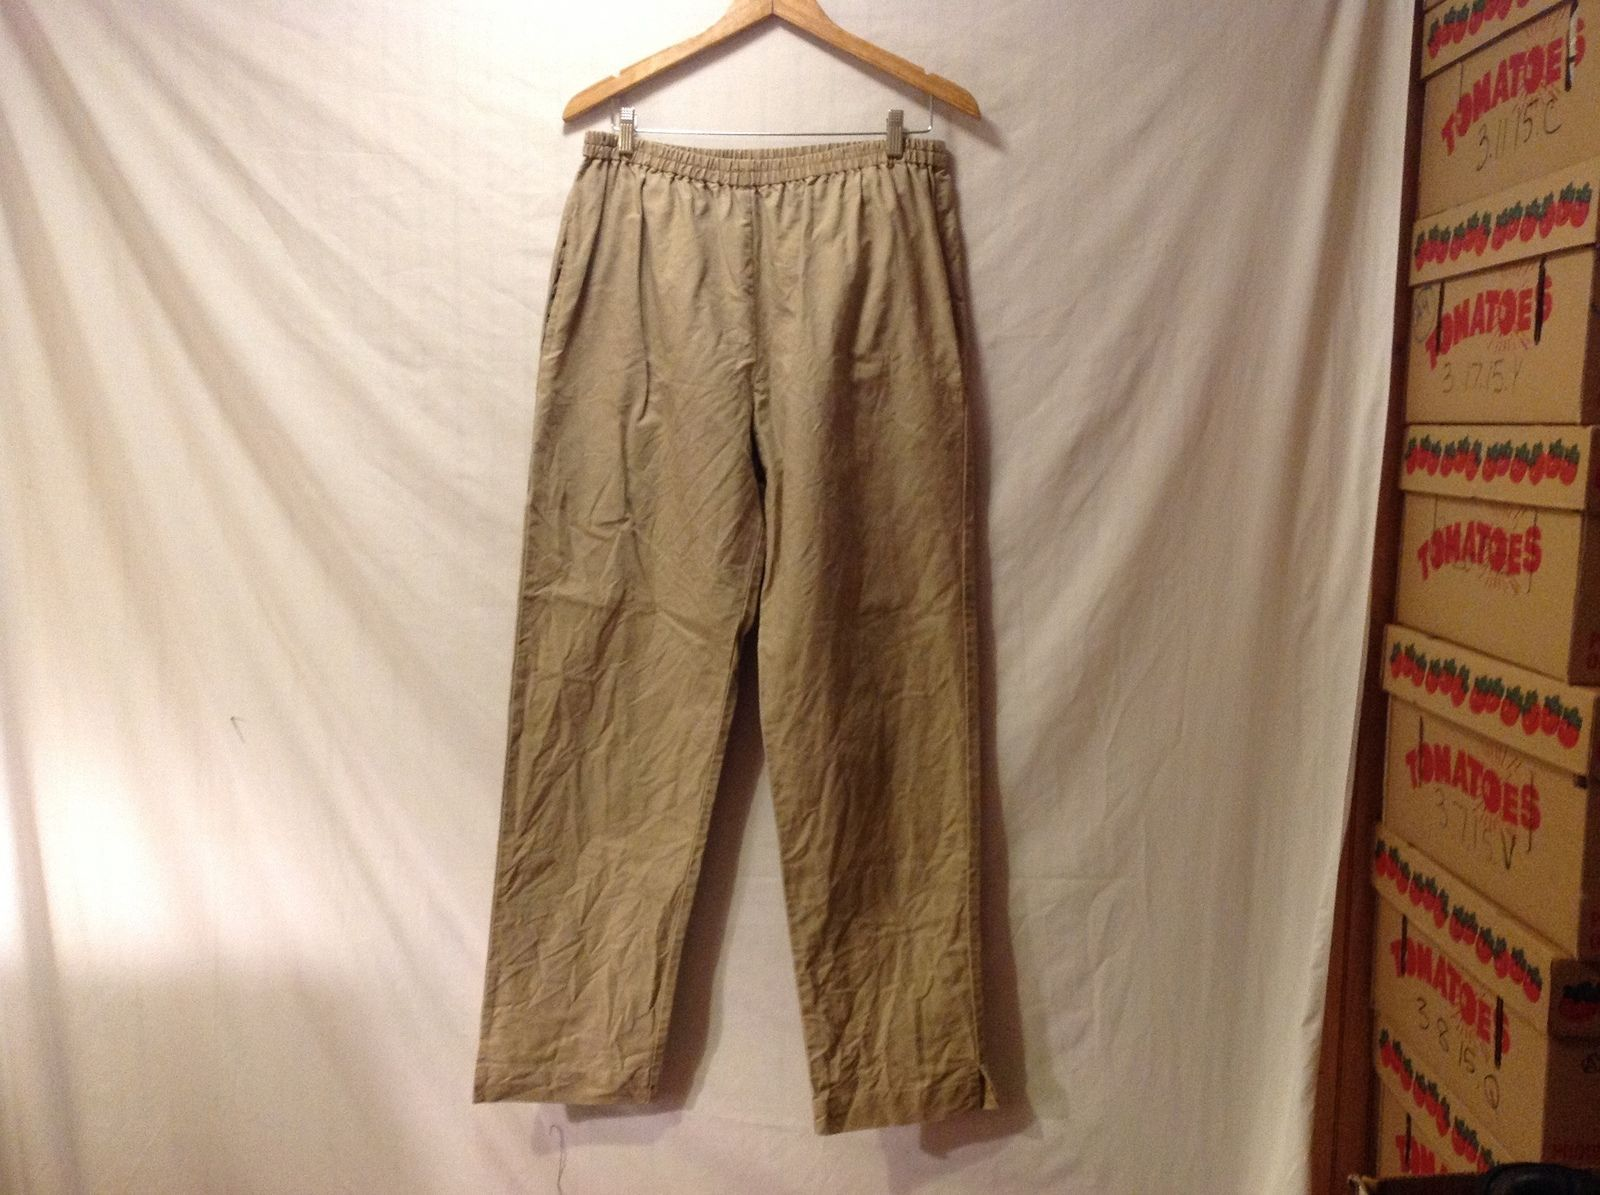 Satguru's Unisex Tan Pants Yoga Casual